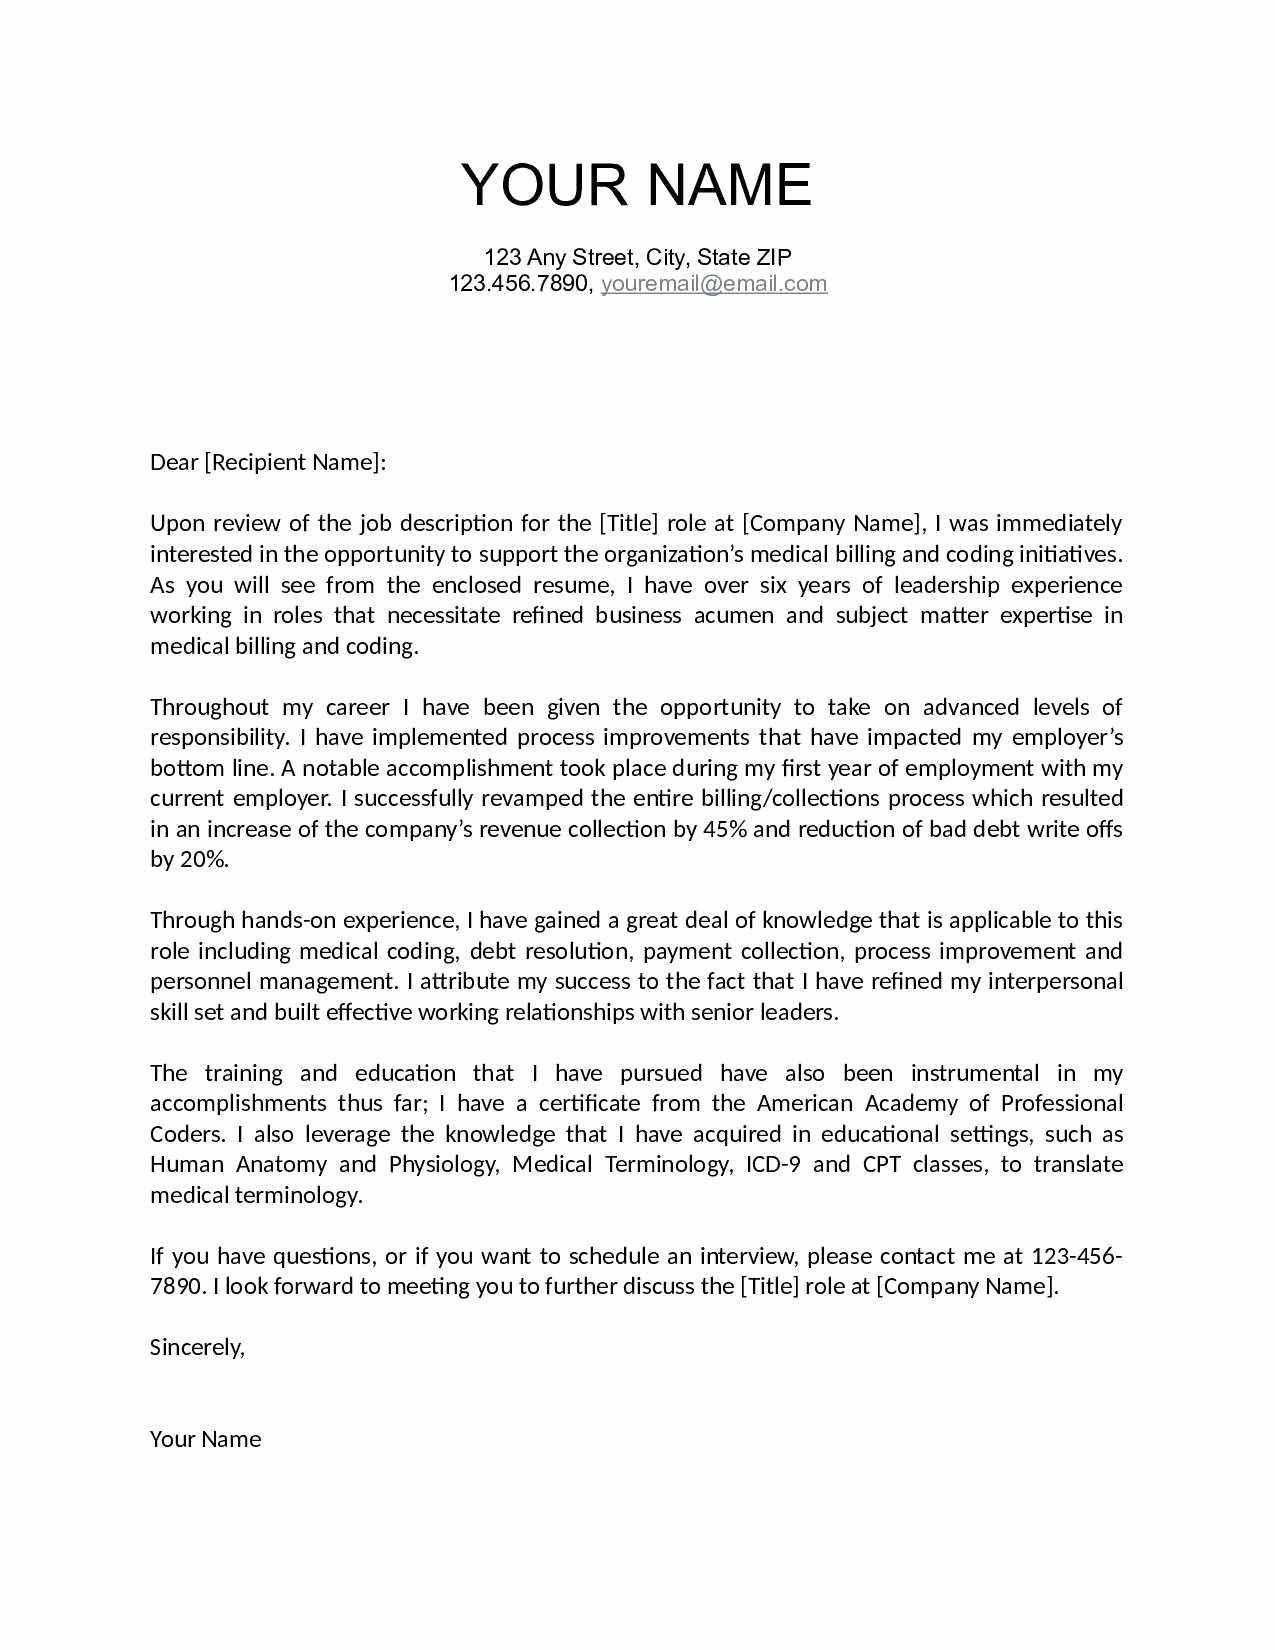 Modern Cover Letter Template - Teachers Resume Template Inspirational Early Childhood Education